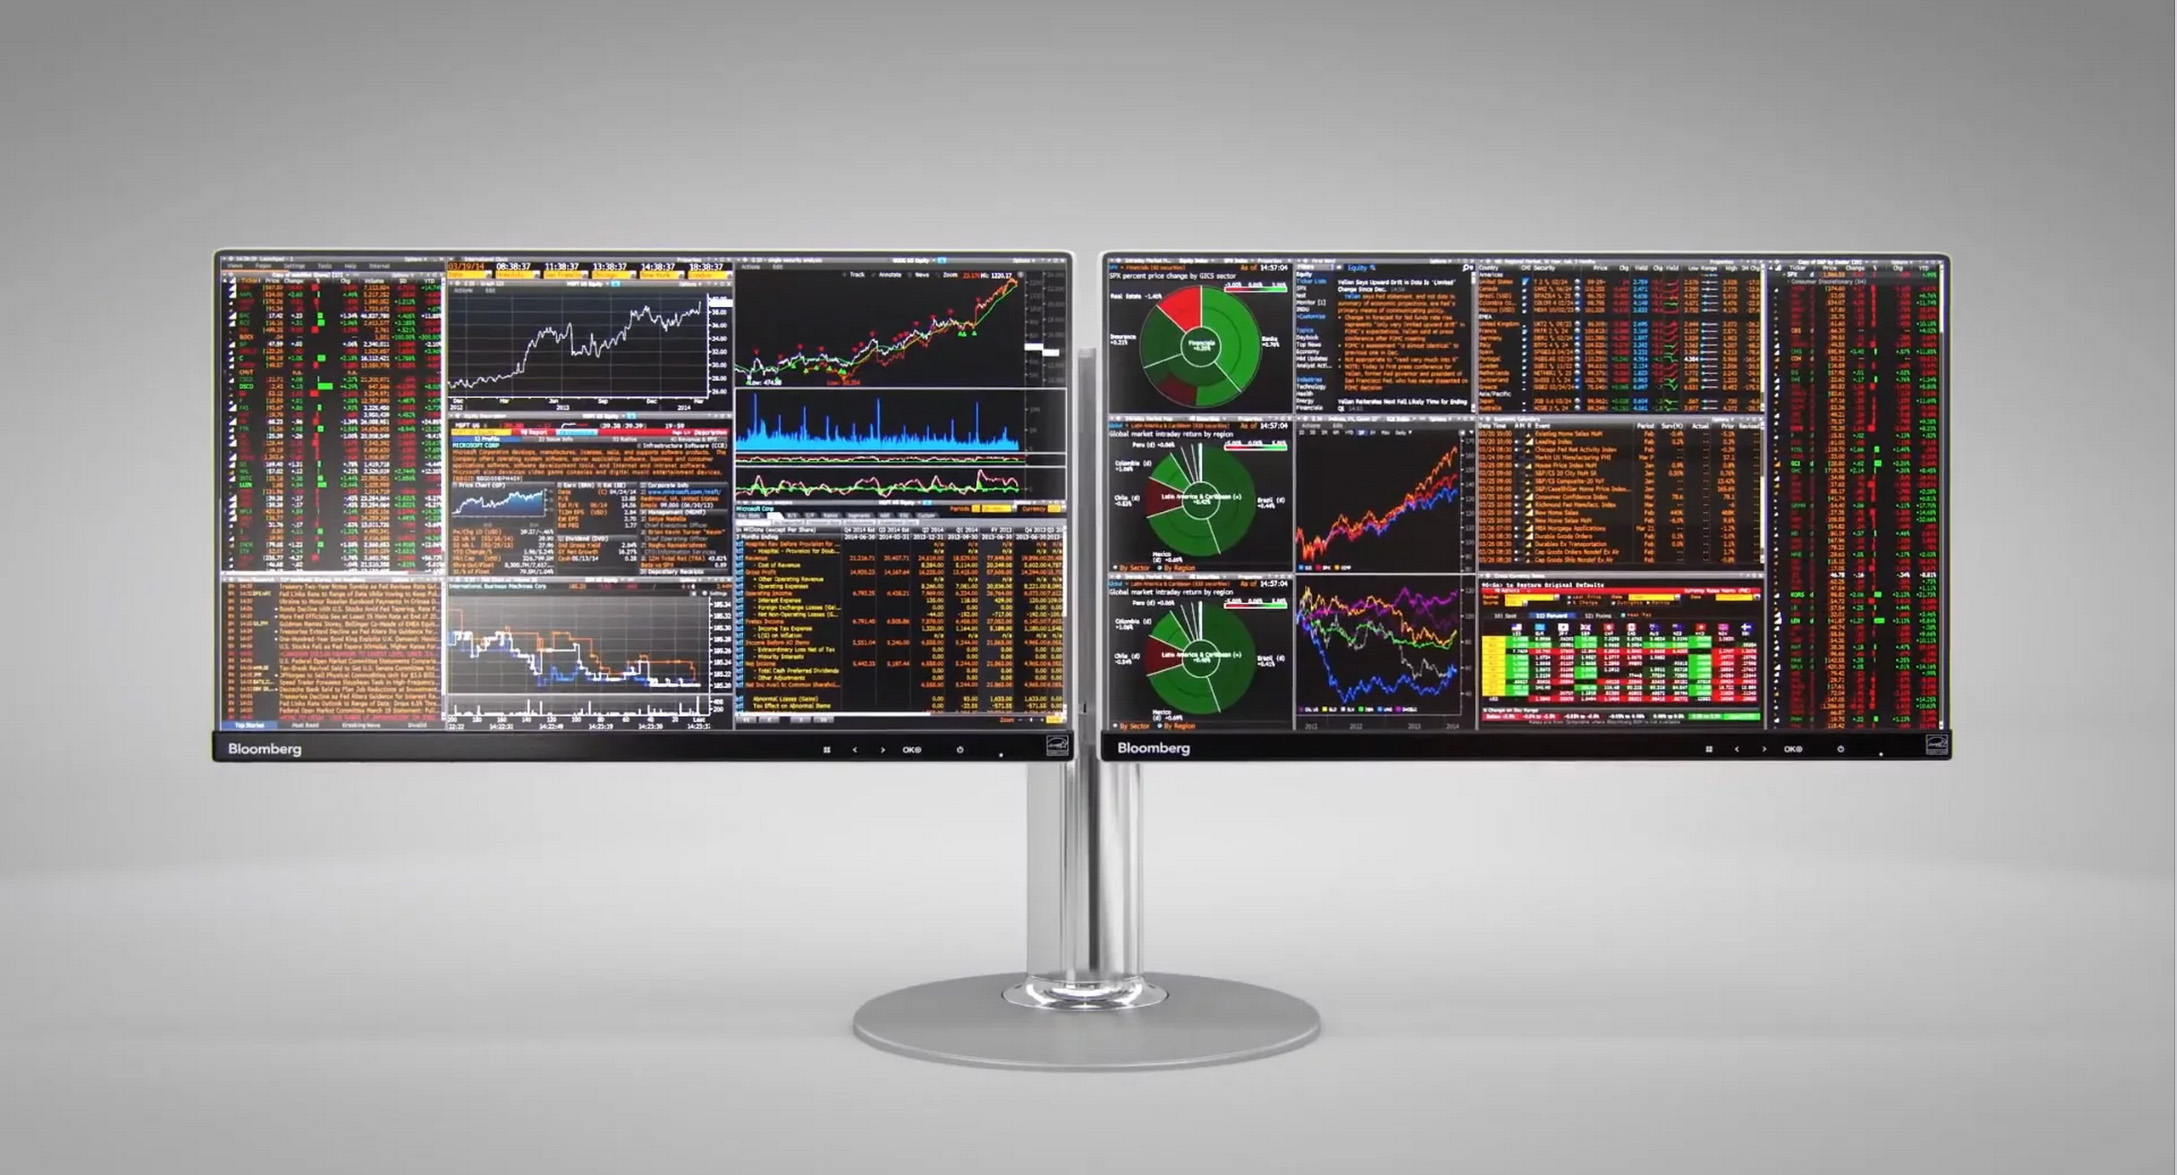 Here's a sample Bloomberg Terminal setup